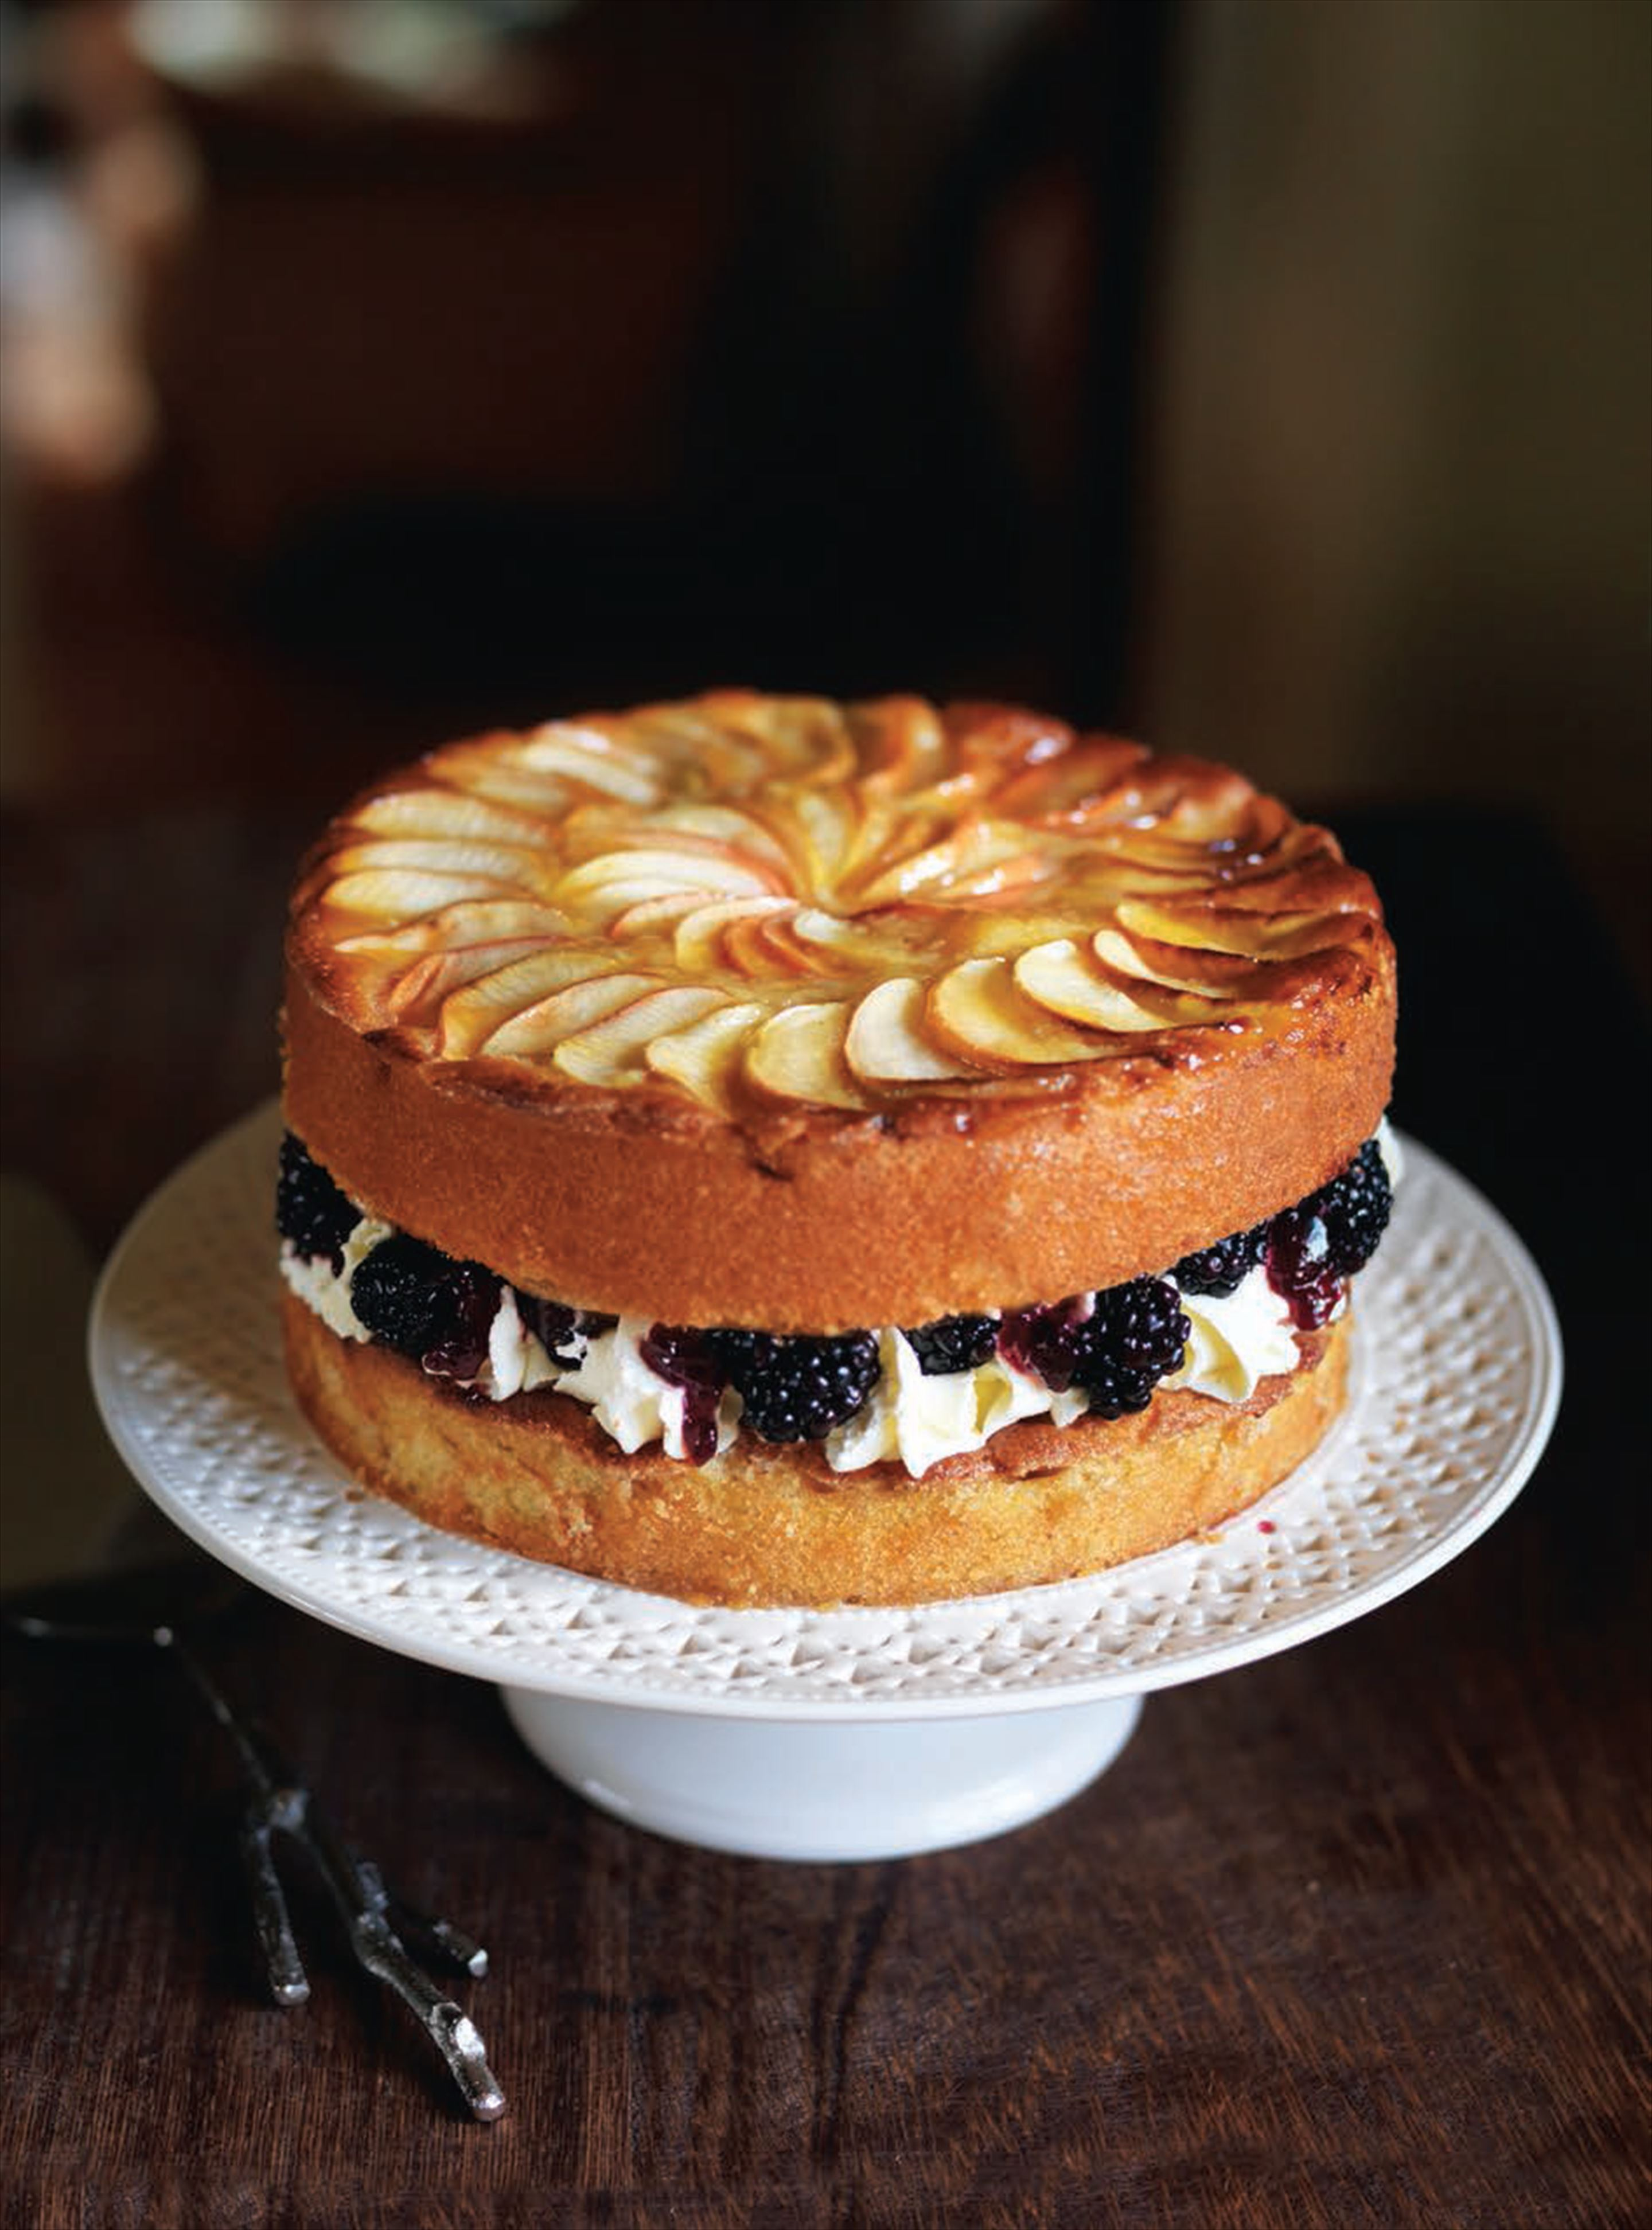 Blackberry and apple cake